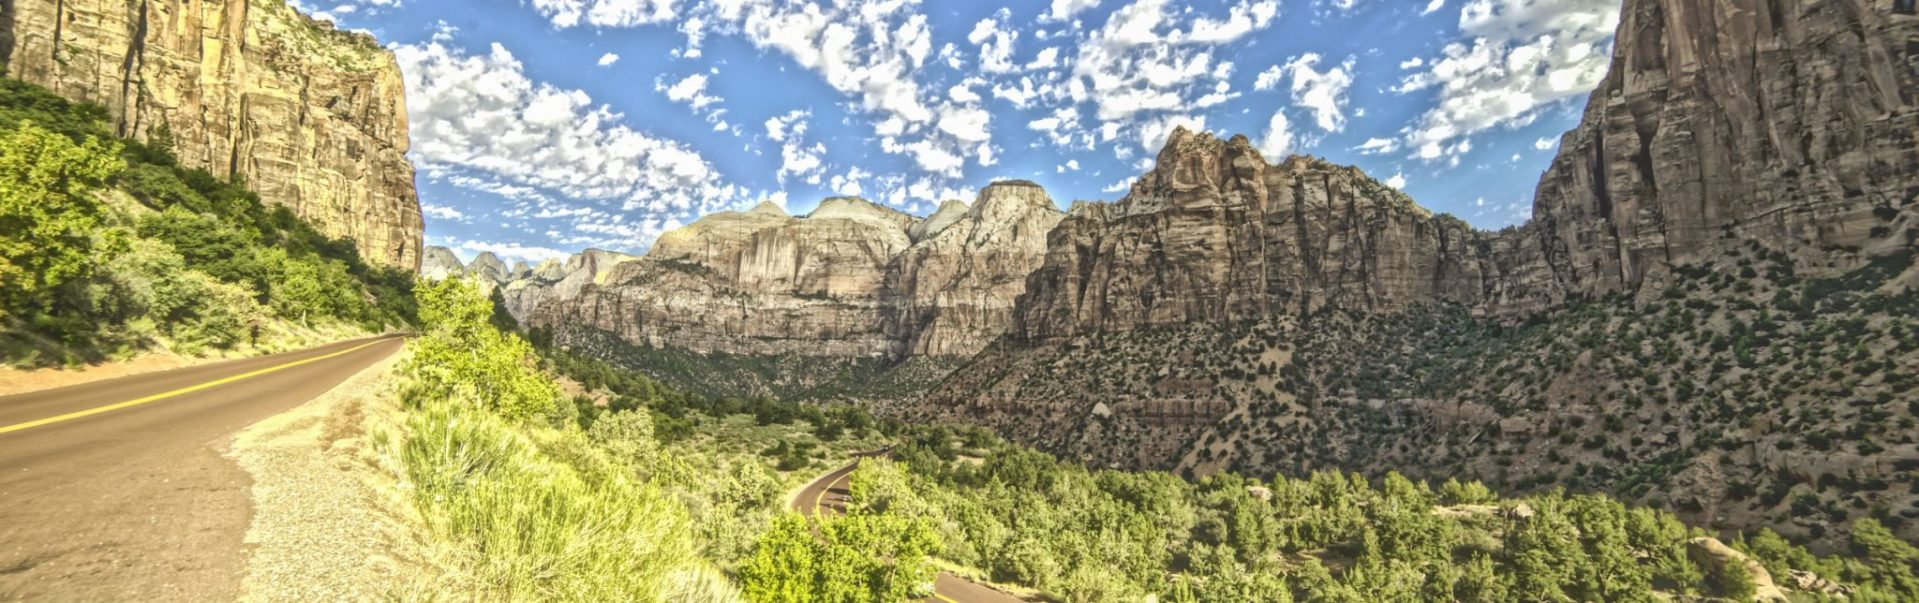 6 Activiteiten in Zion National Park